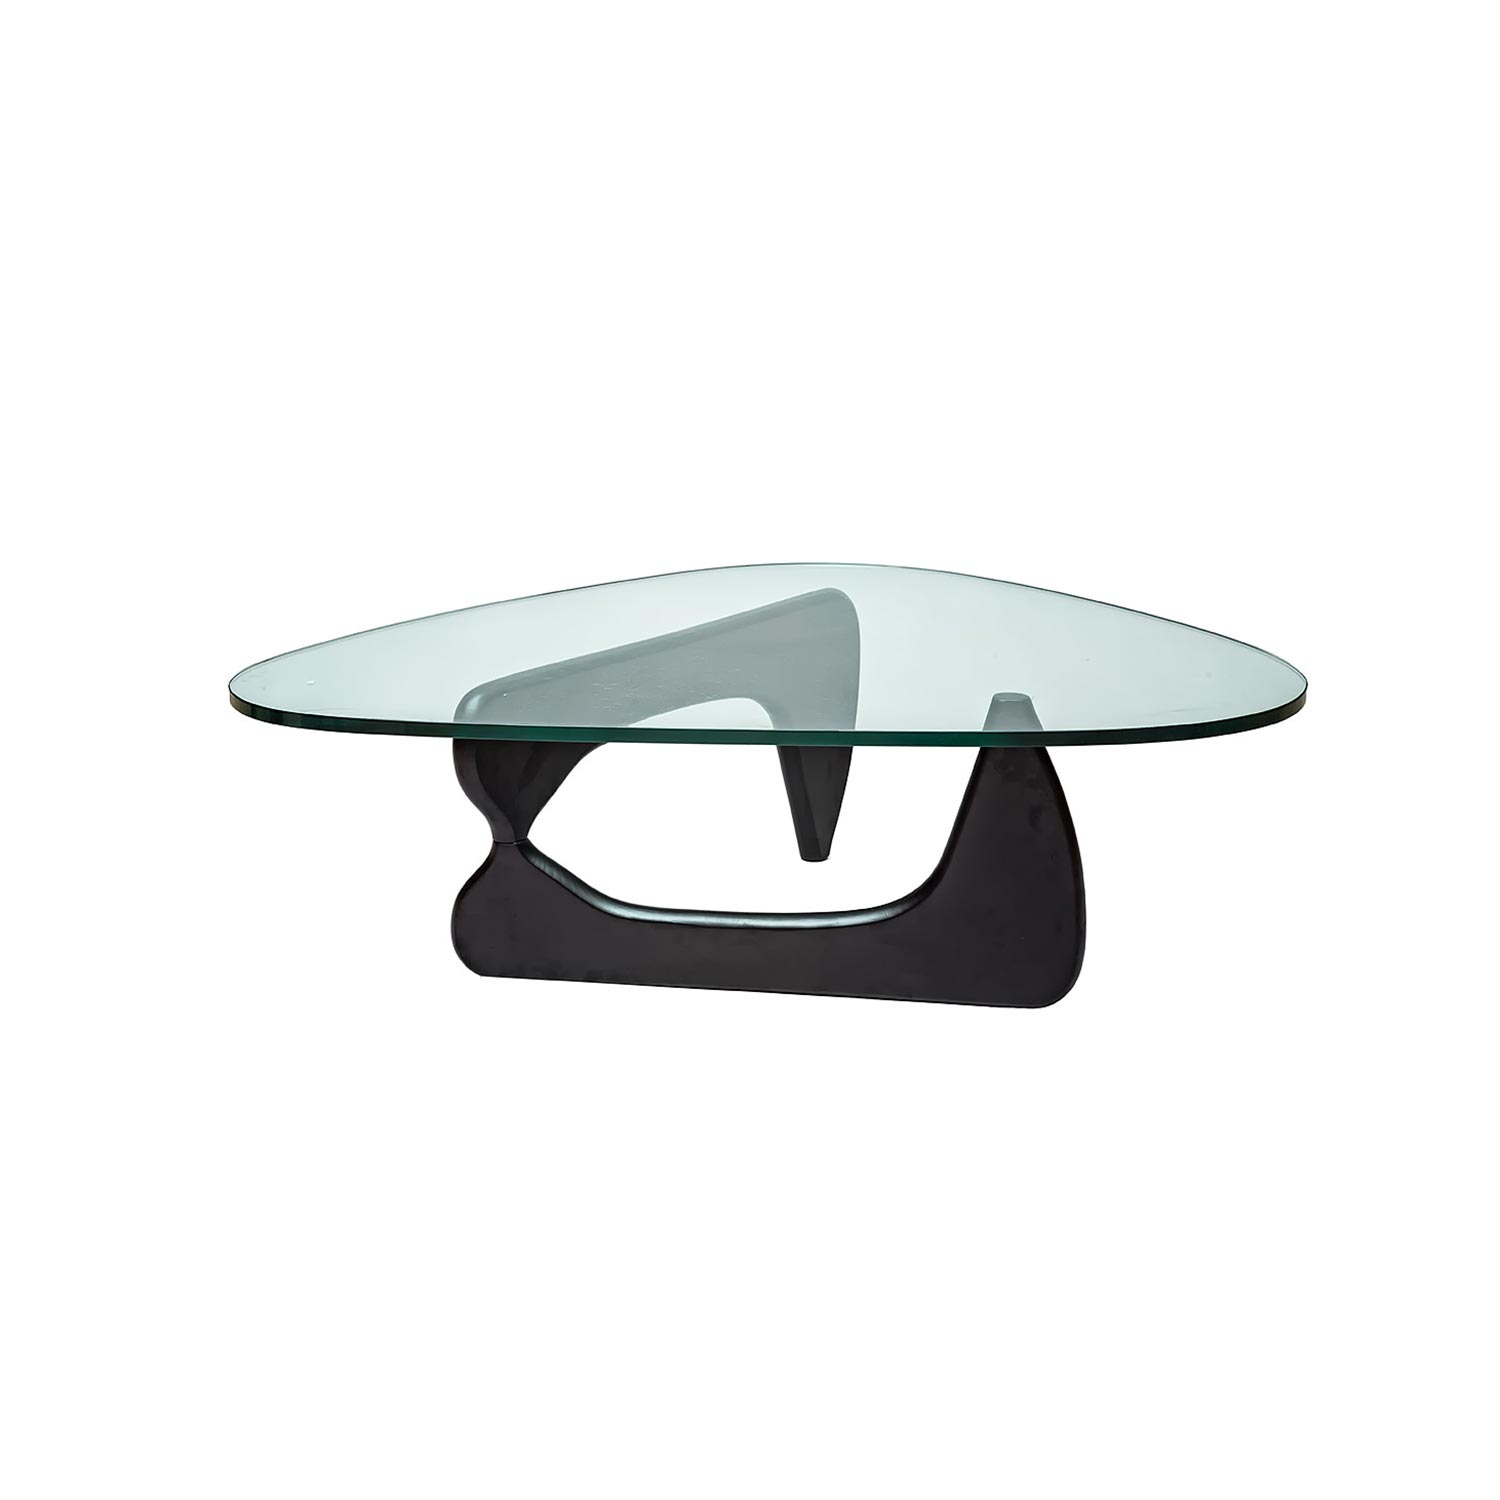 Coffee Table designed by Isamu Noguchi